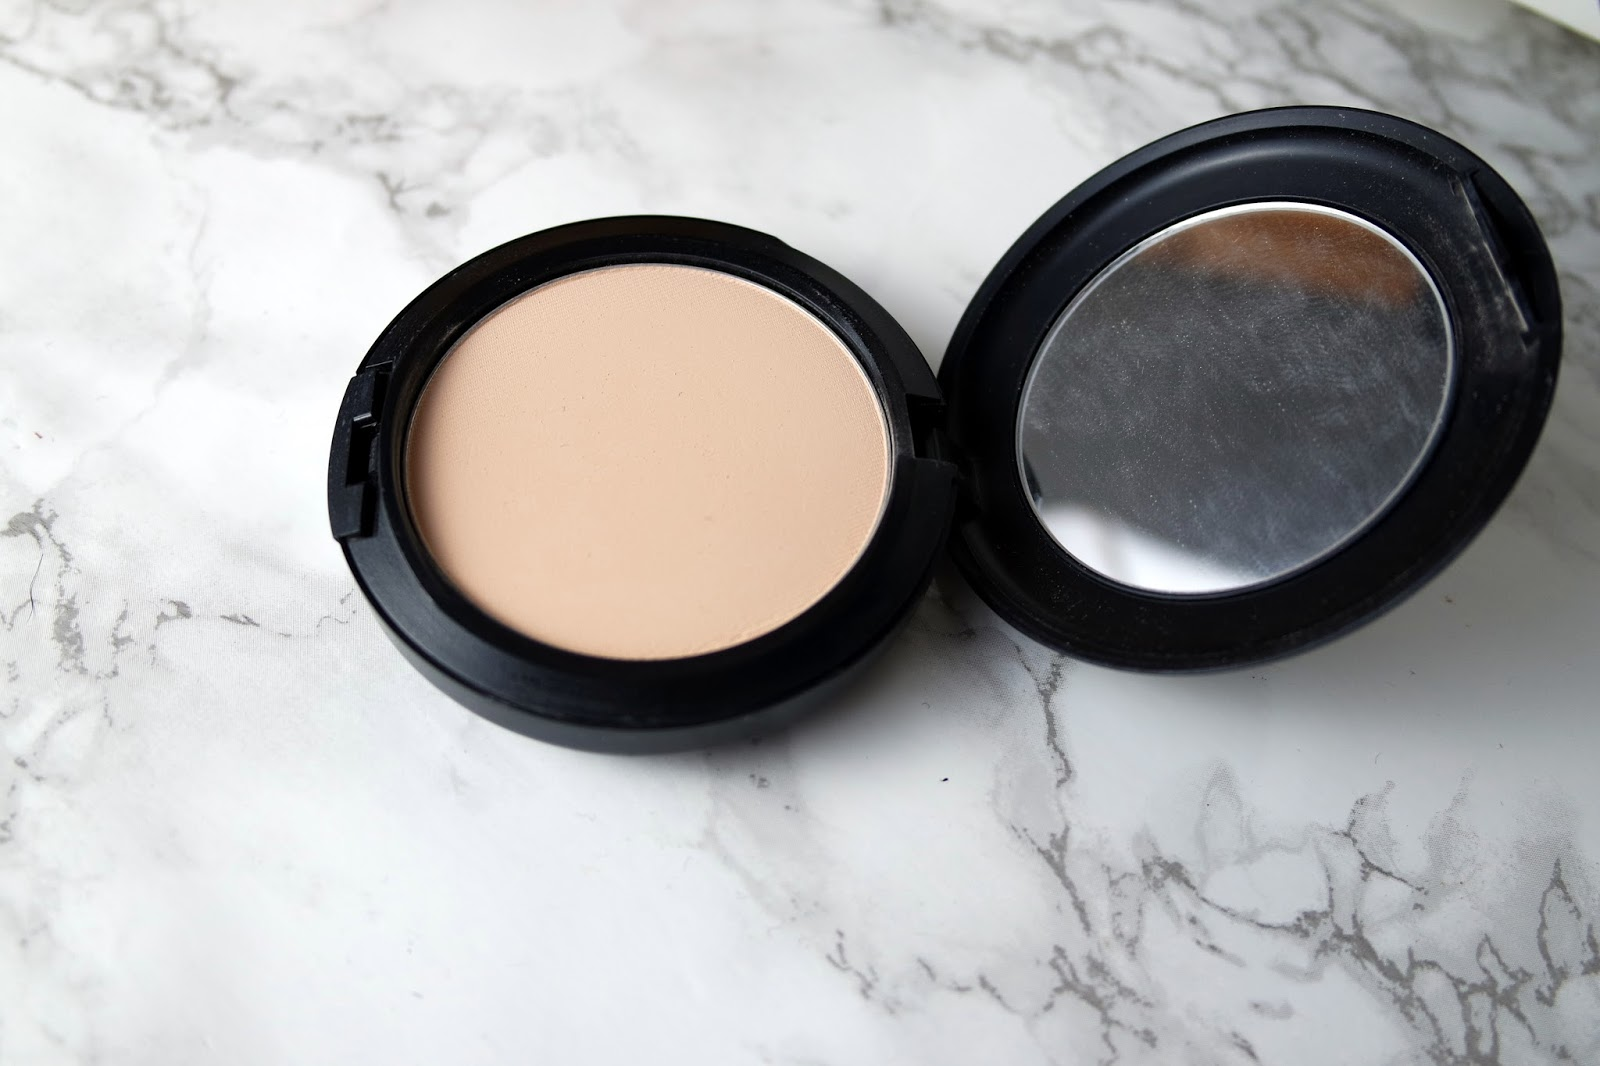 Review Mac Studio Conceal And Correct Collection Fix Powder Plus Foundation The Comes In A Standard Black Case But It Has Clip Which Makes Easier To Open Means Stays Shut Better My Bag